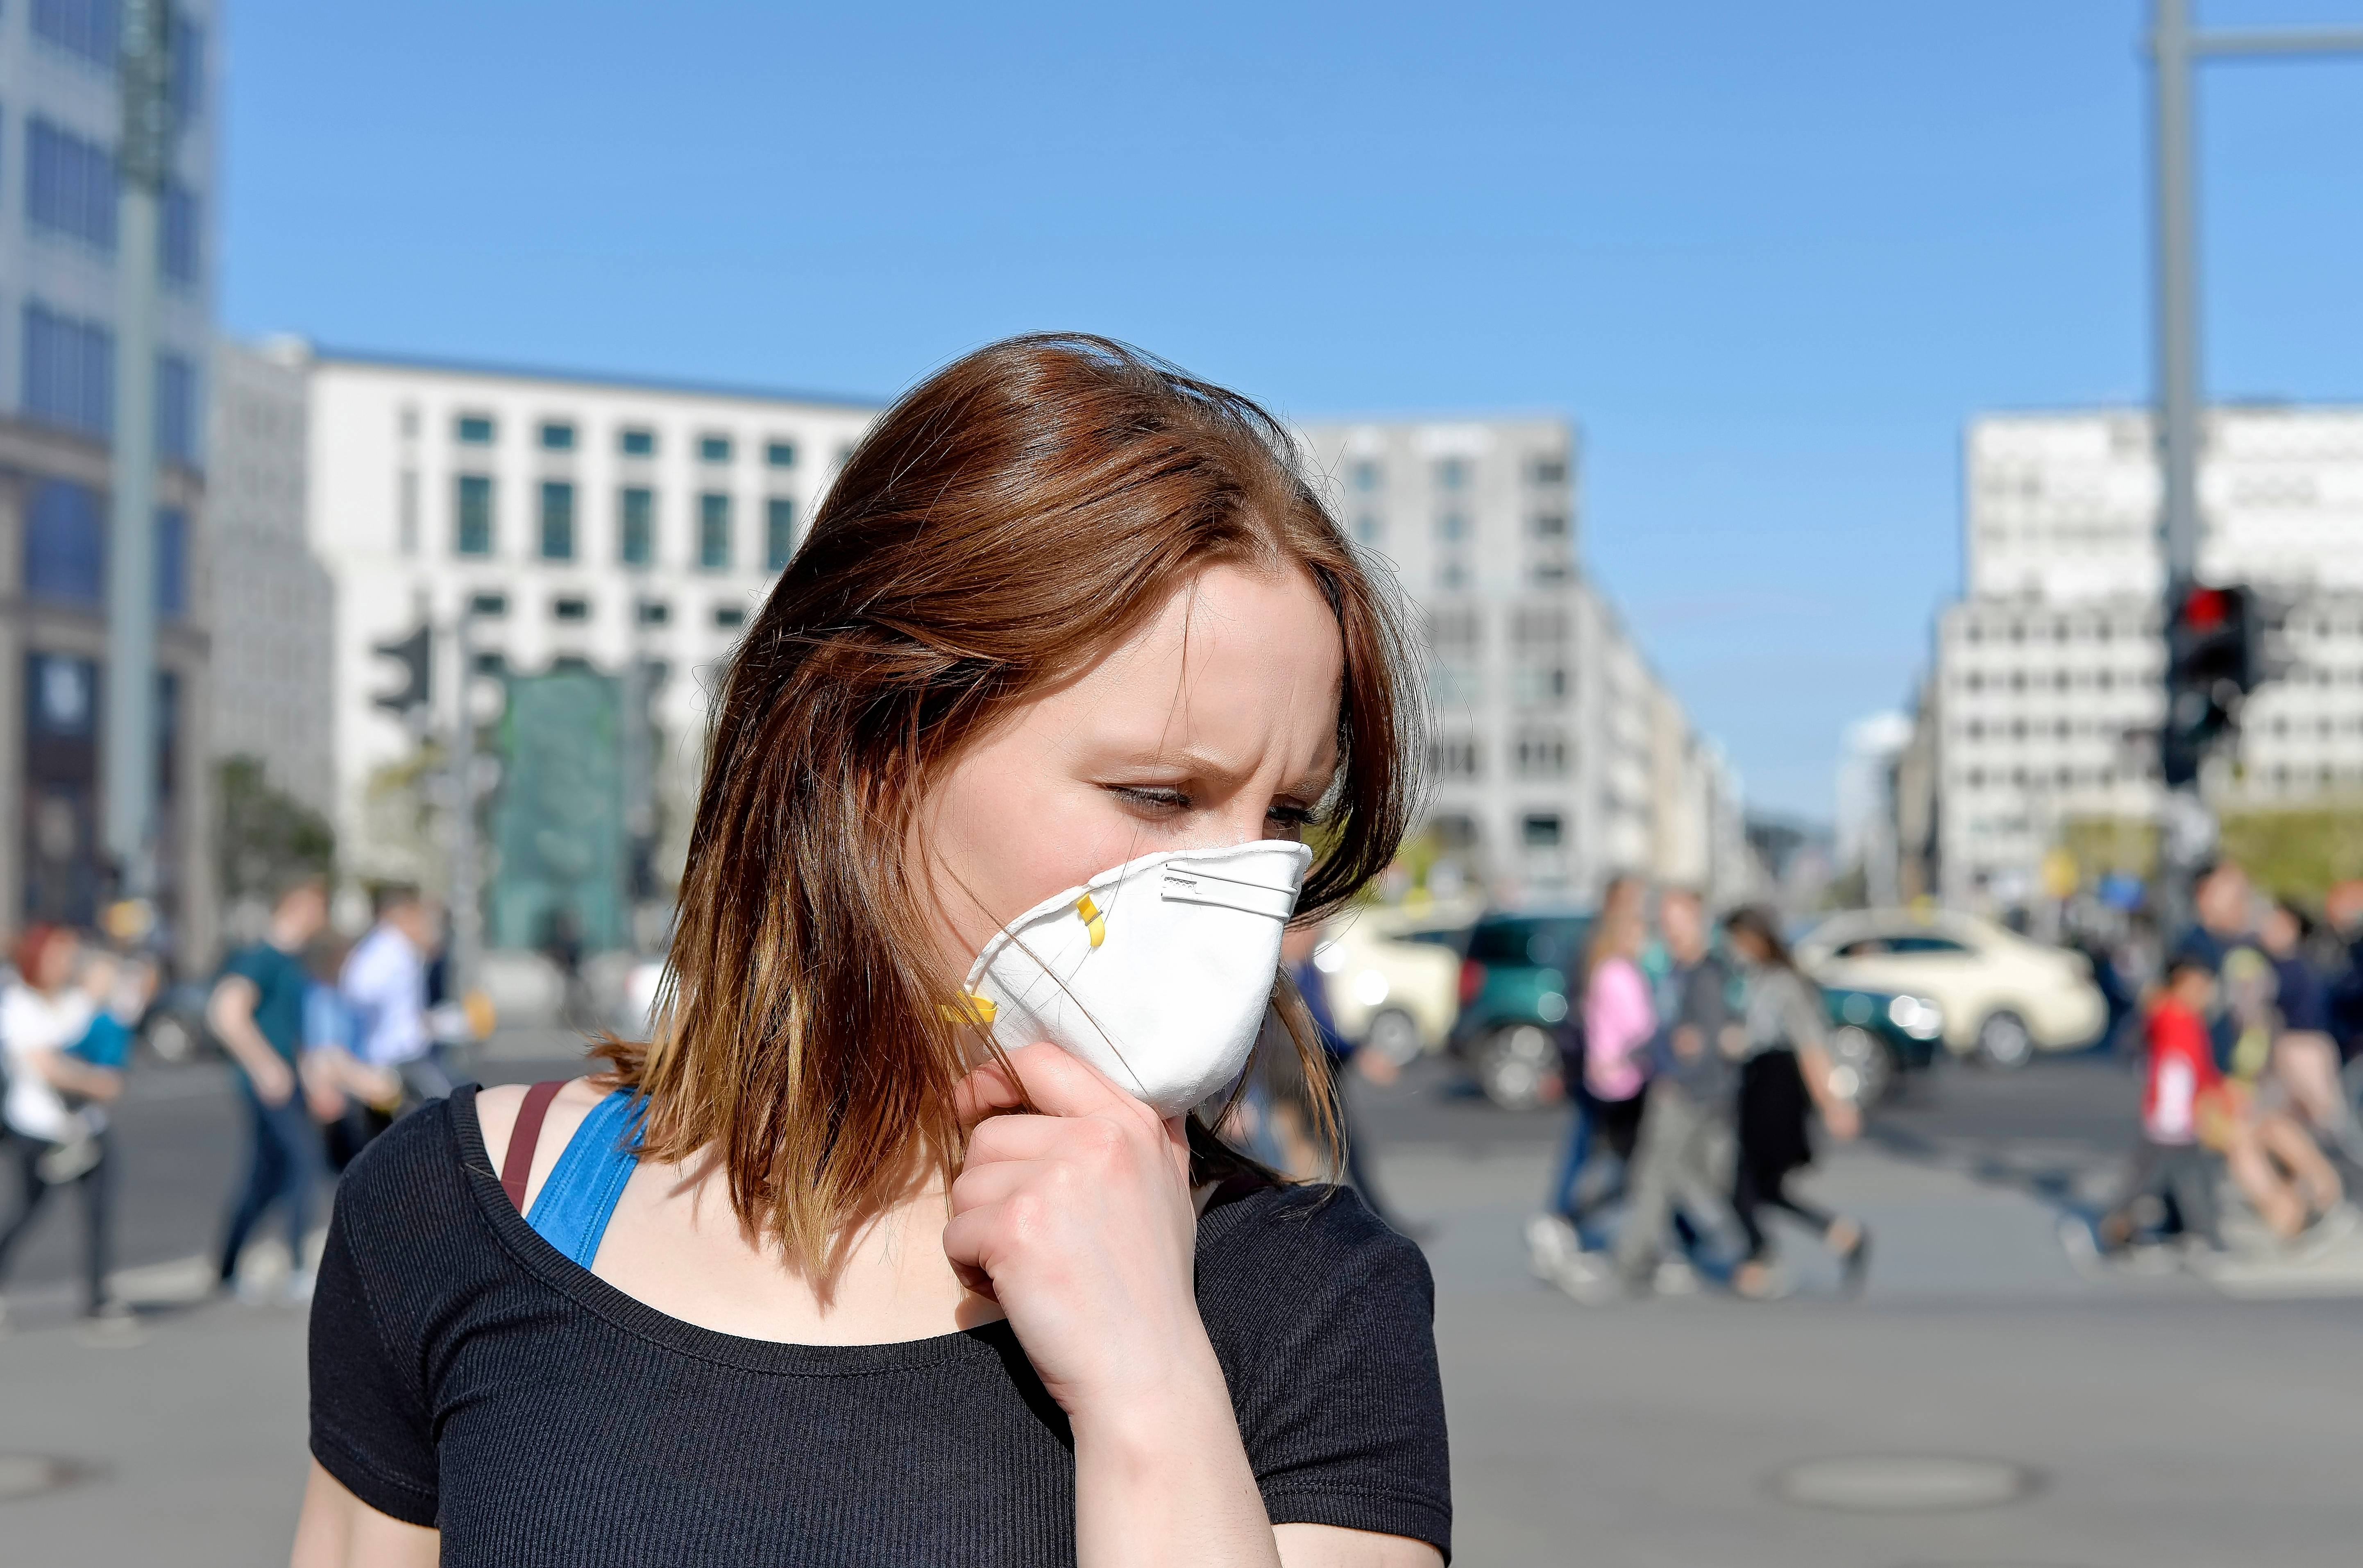 Consider packing a respirator mask if you will be traveling to an area with poor air quality.